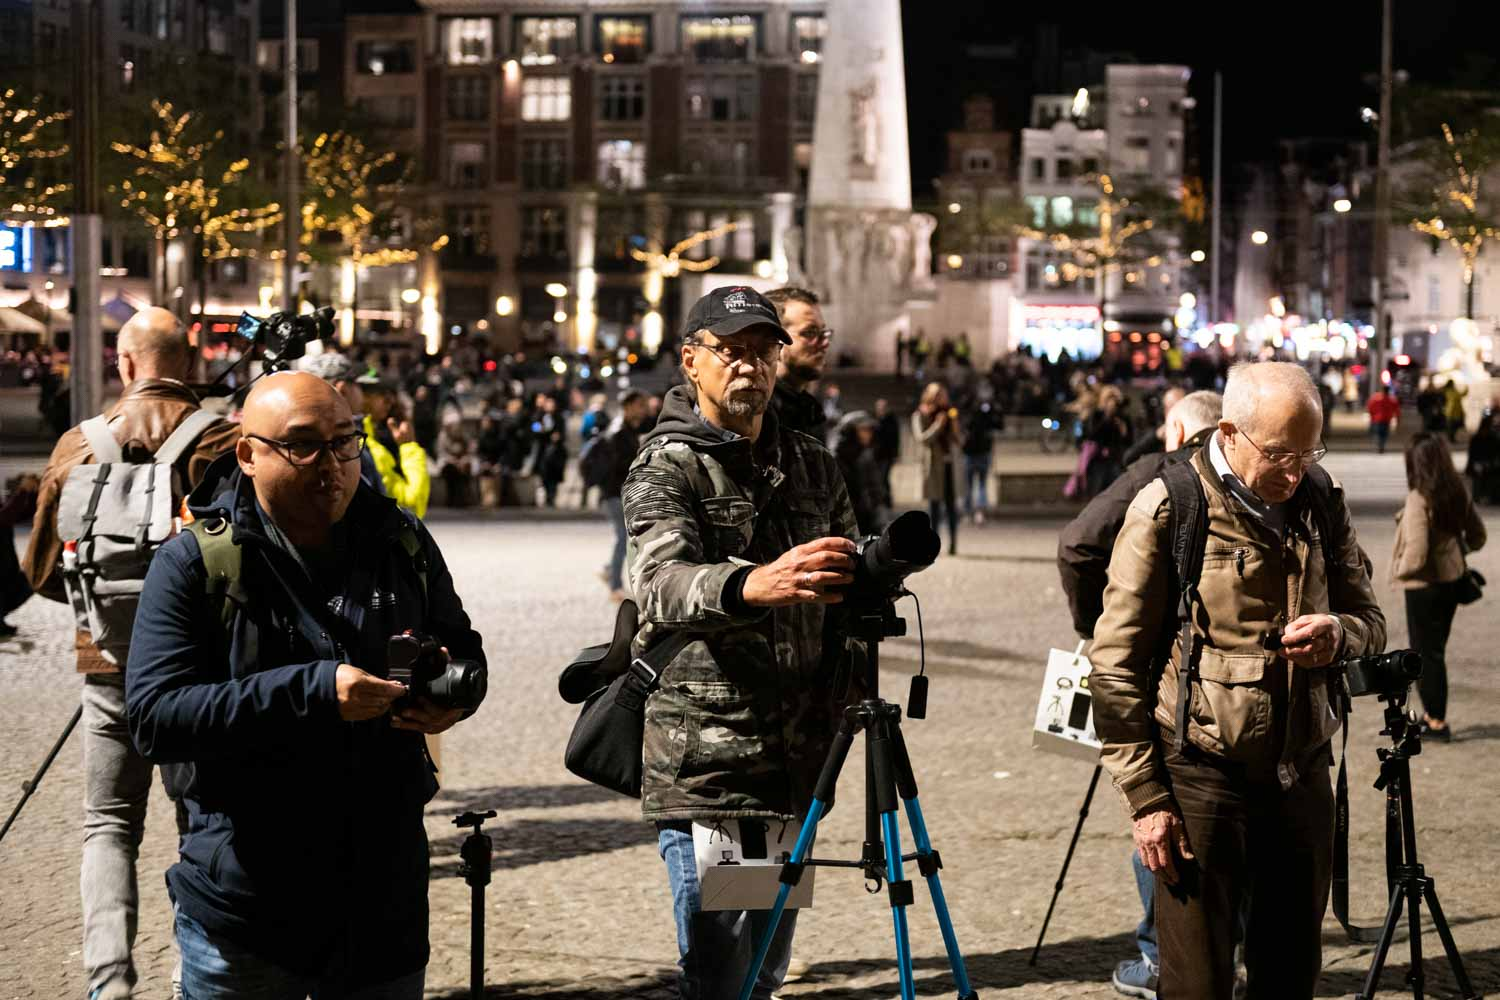 Photowalk in Amsterdam